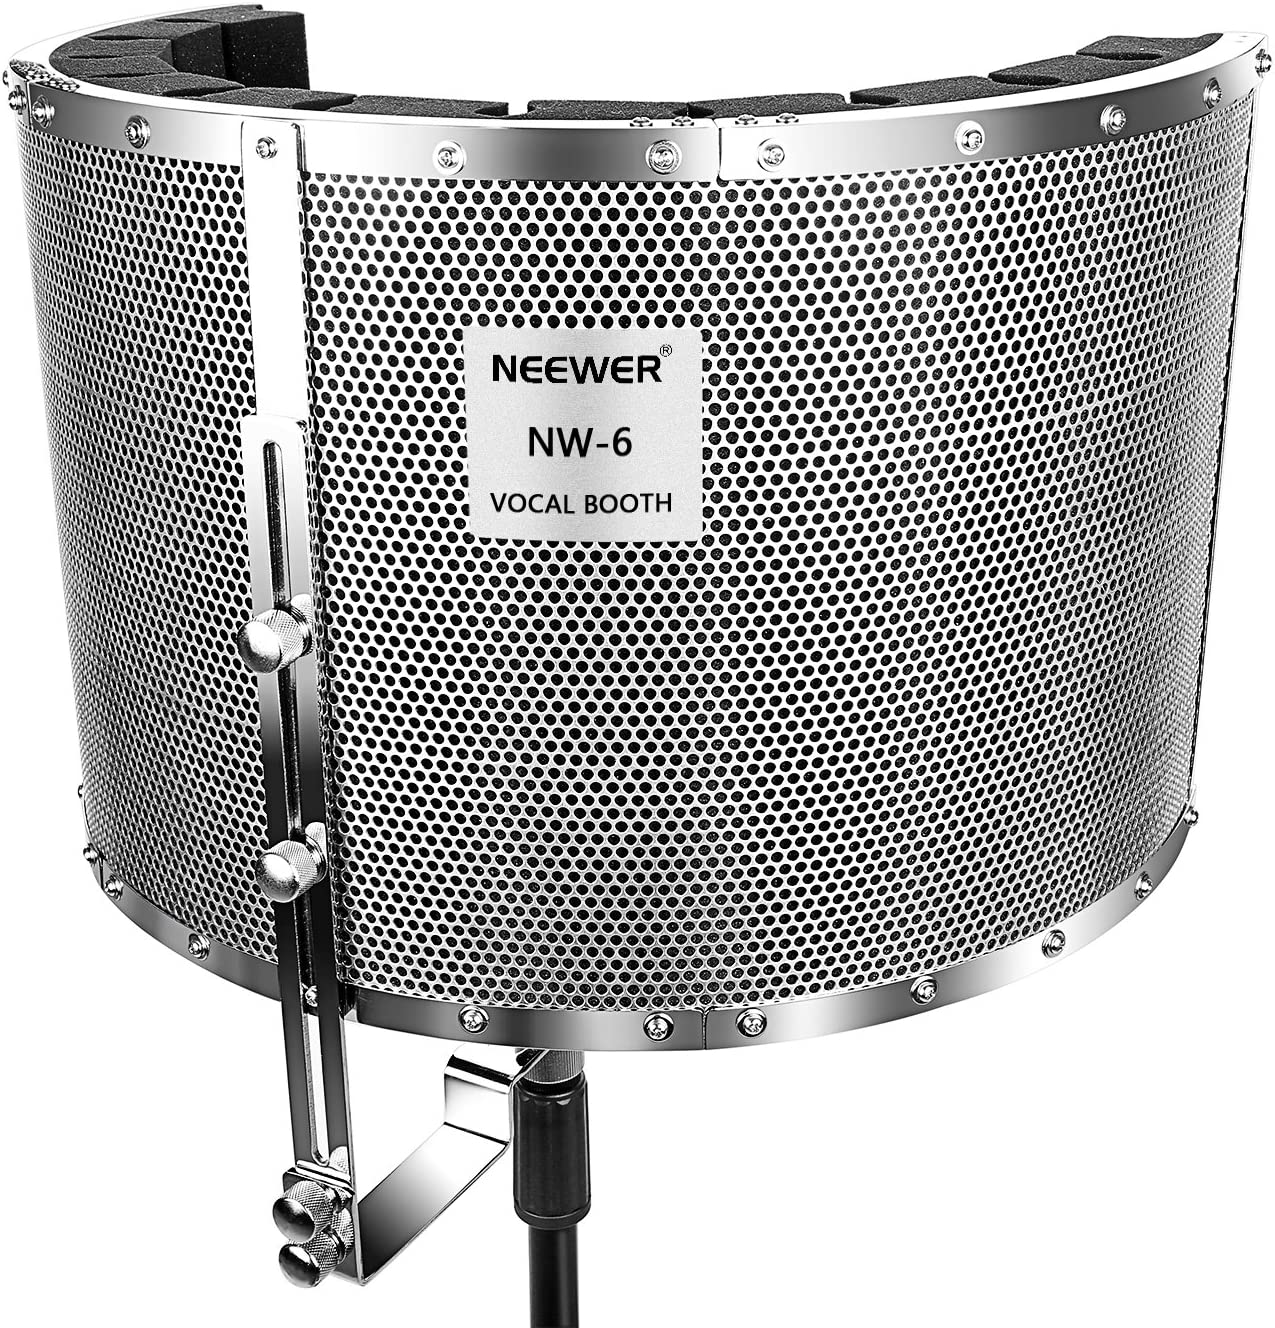 """Neewer Microphone Isolation Shield Absorber Filter Vocal Isolation Booth with Lightweight Aluminum Panel, Thick Soundproofing Foams, Mounting Brackets and Screws for Mic Stand with 5/8"""" Thread"""